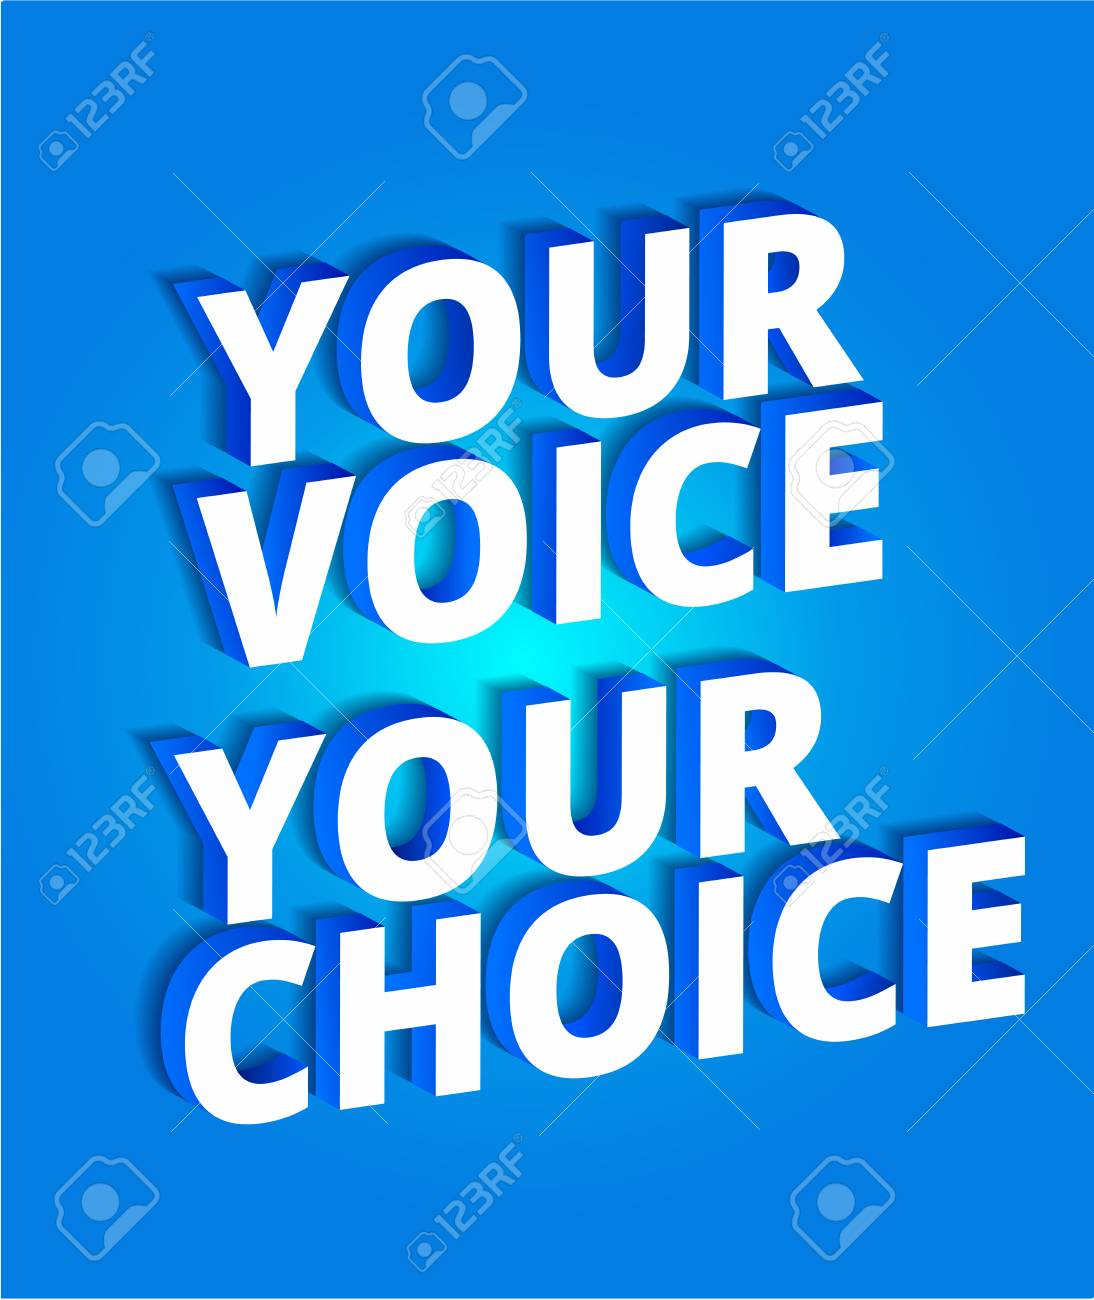 Your voice your choice. Political slogan. Parliamentary elections.